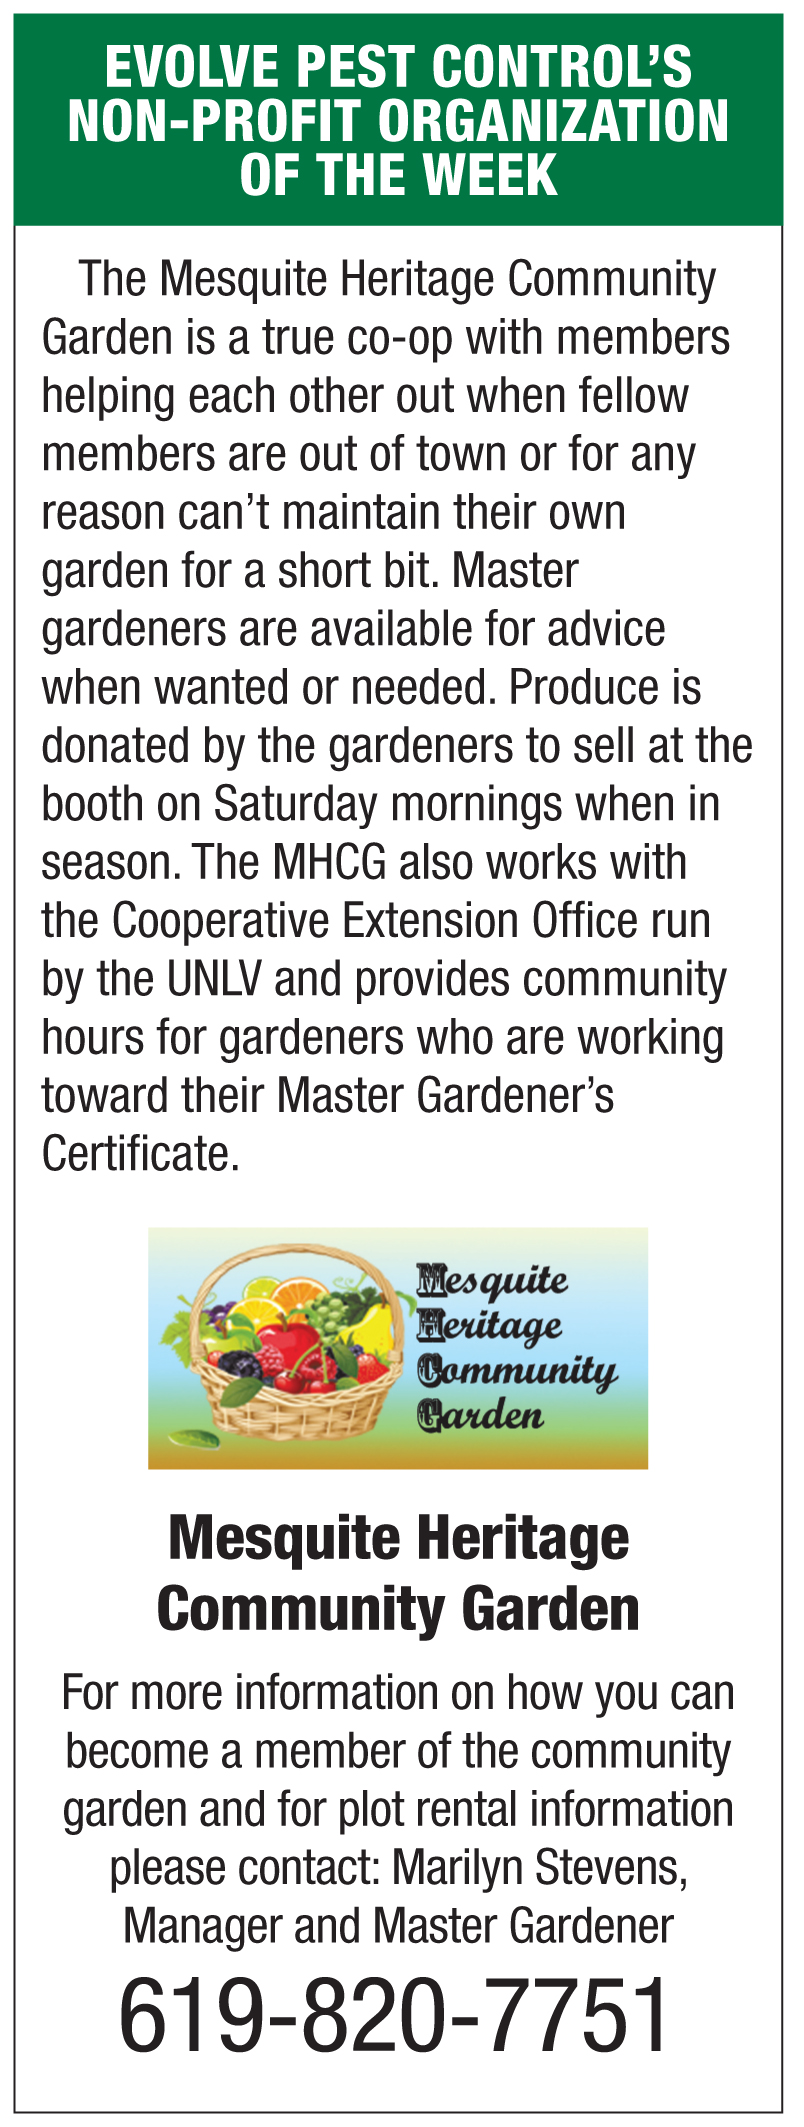 Evolve Pest Control's Non Profit of the week